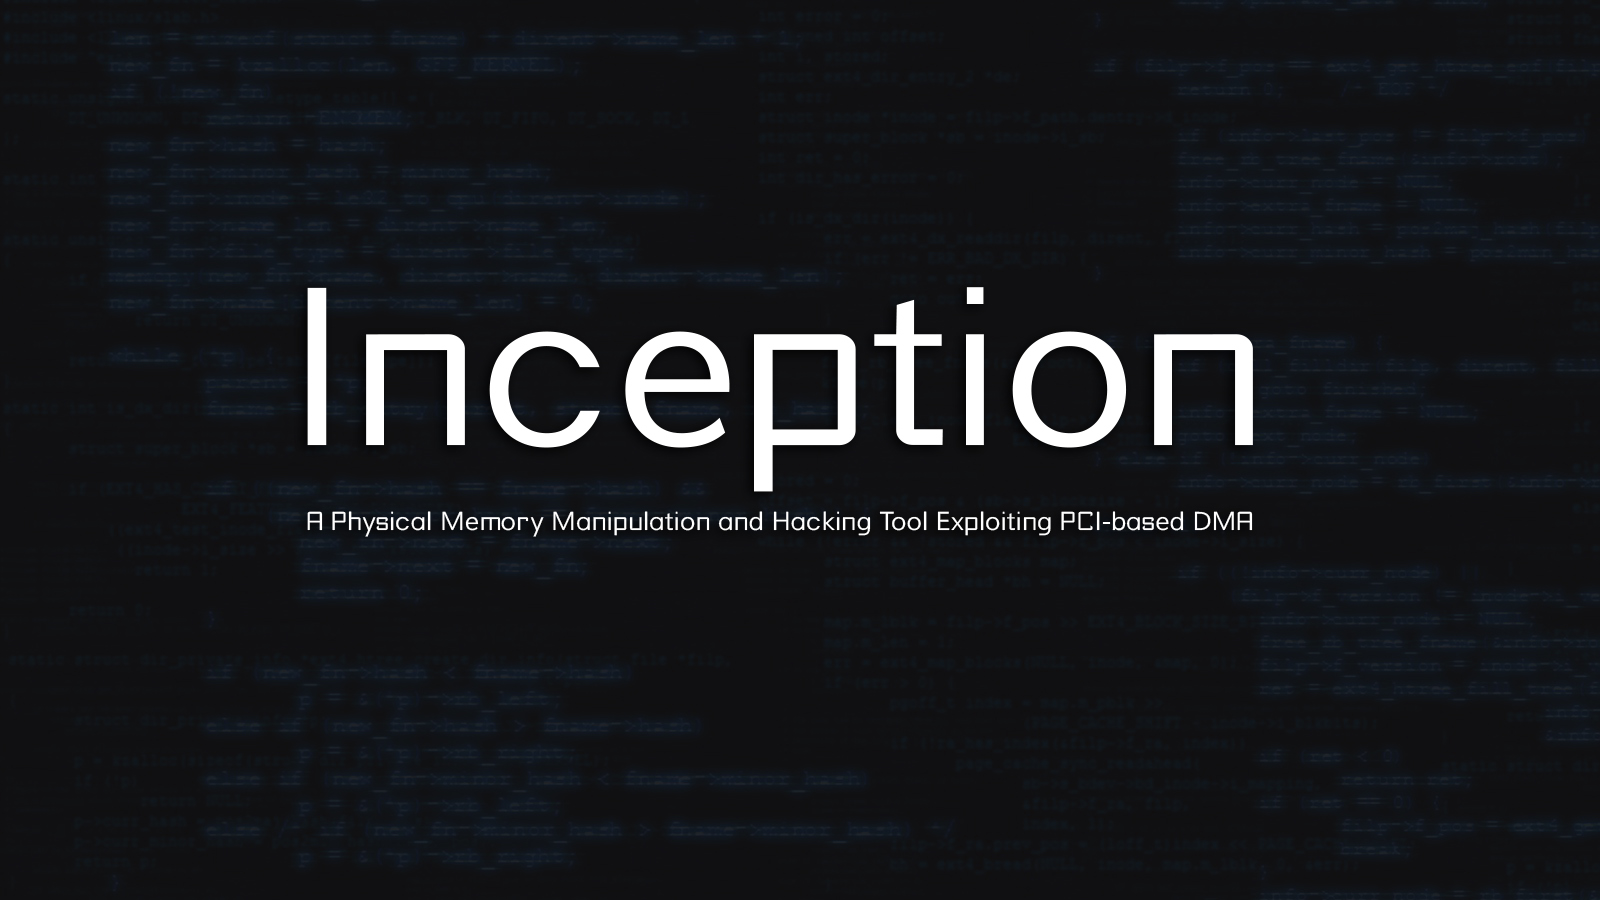 Inception - A Physical Memory Manipulation and Hacking Tool Exploiting PCI-based DMA